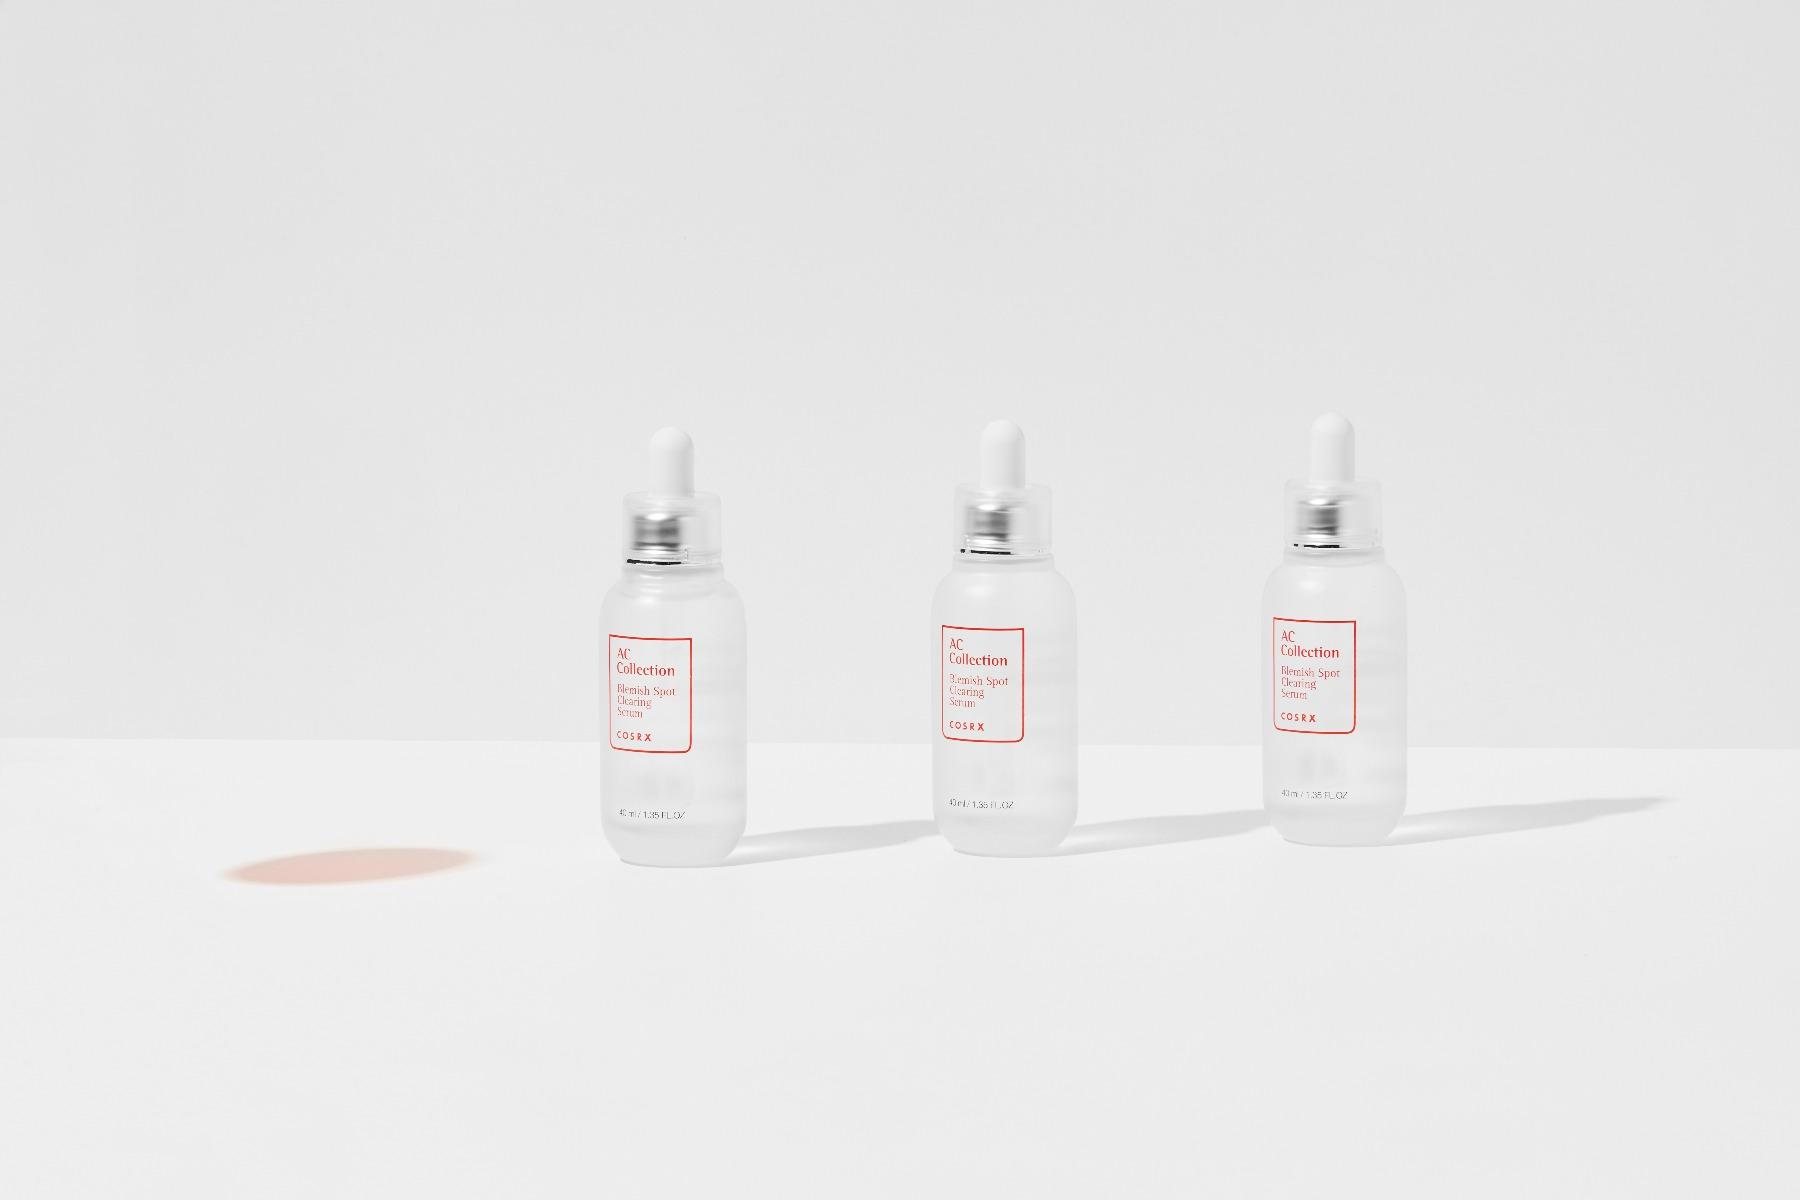 AC Collection Blemish Spot Clearing Serum_3